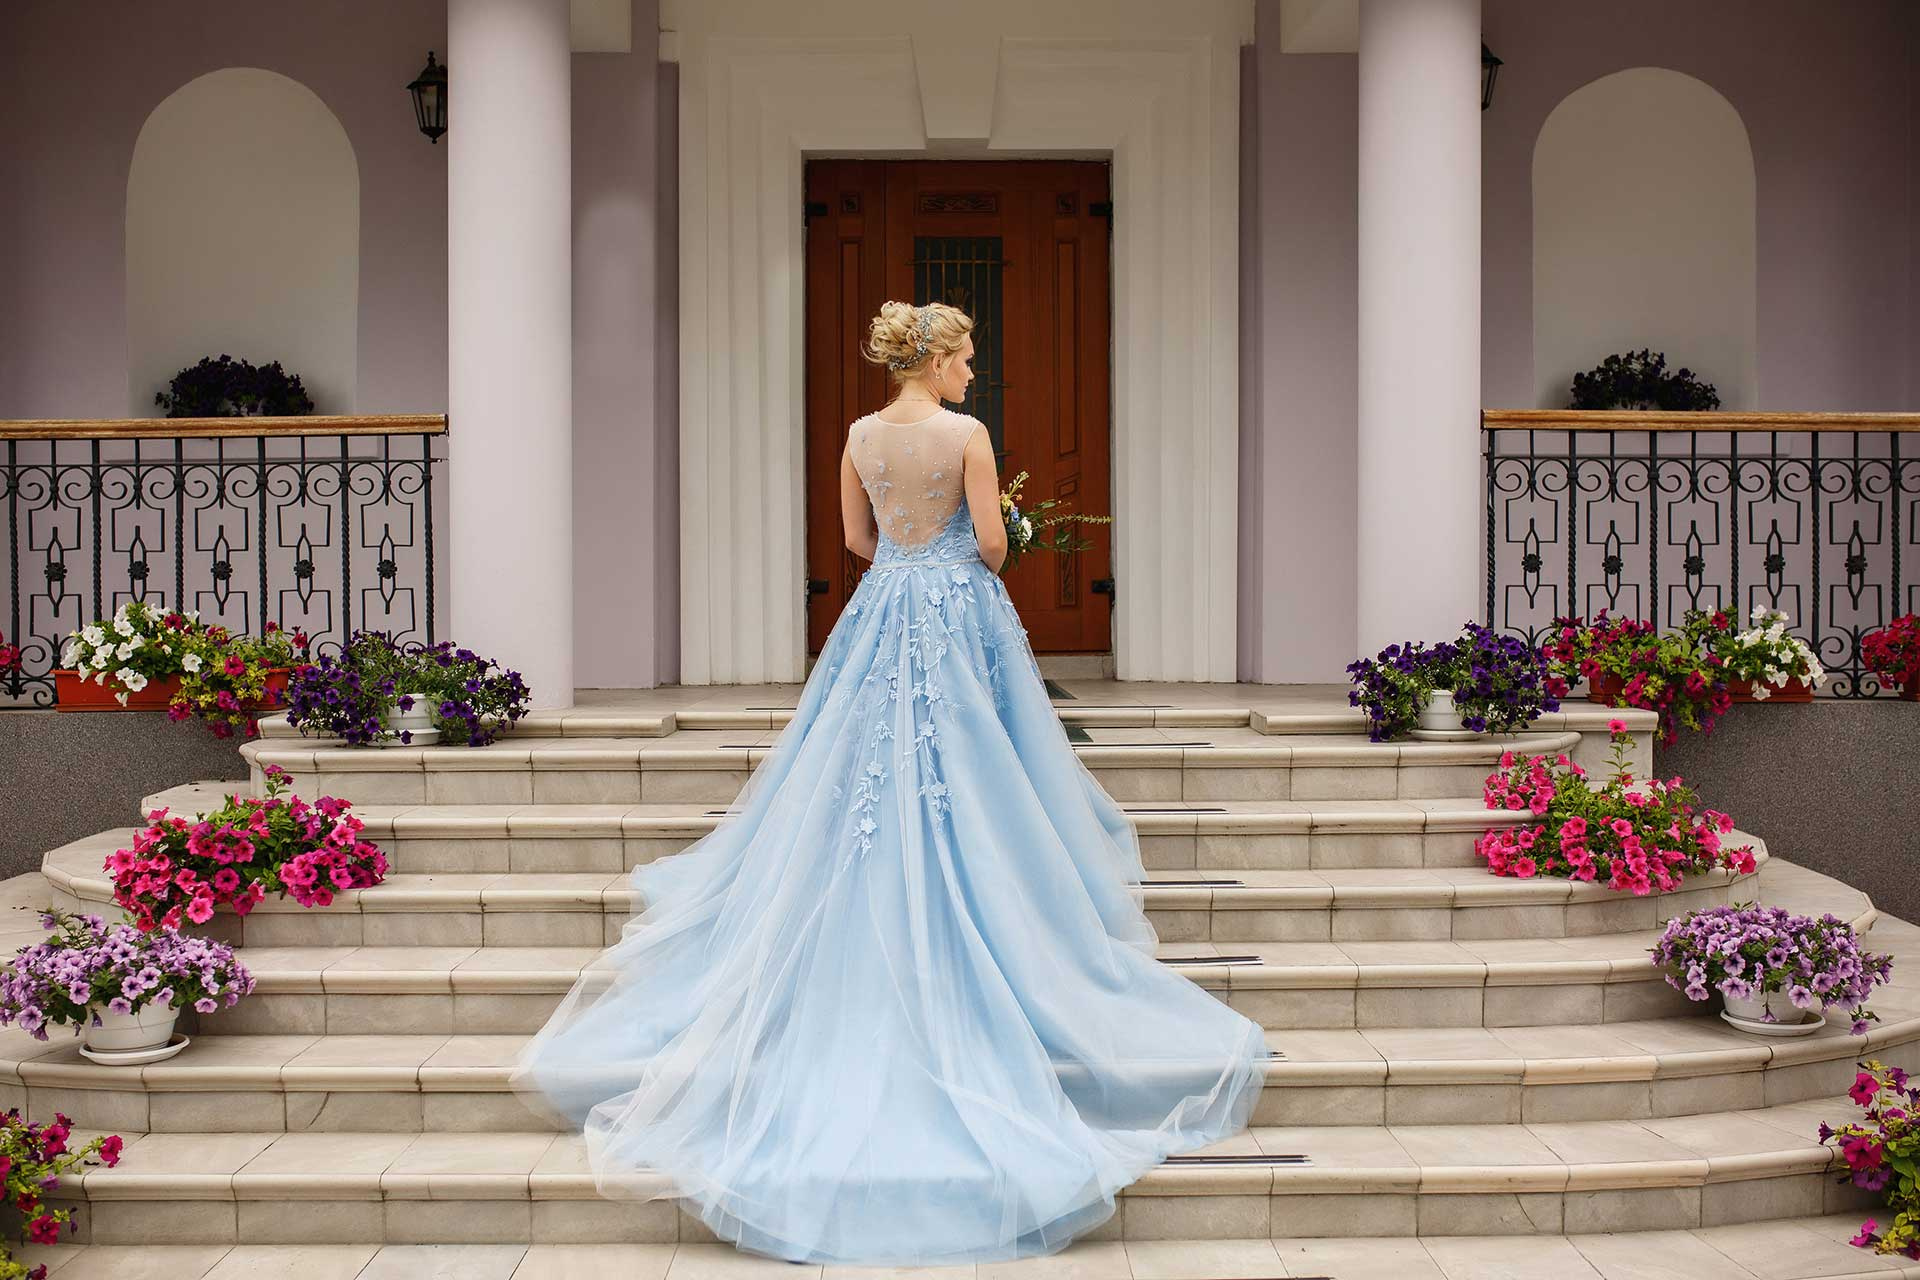 Blue Brides - New year, New bride!